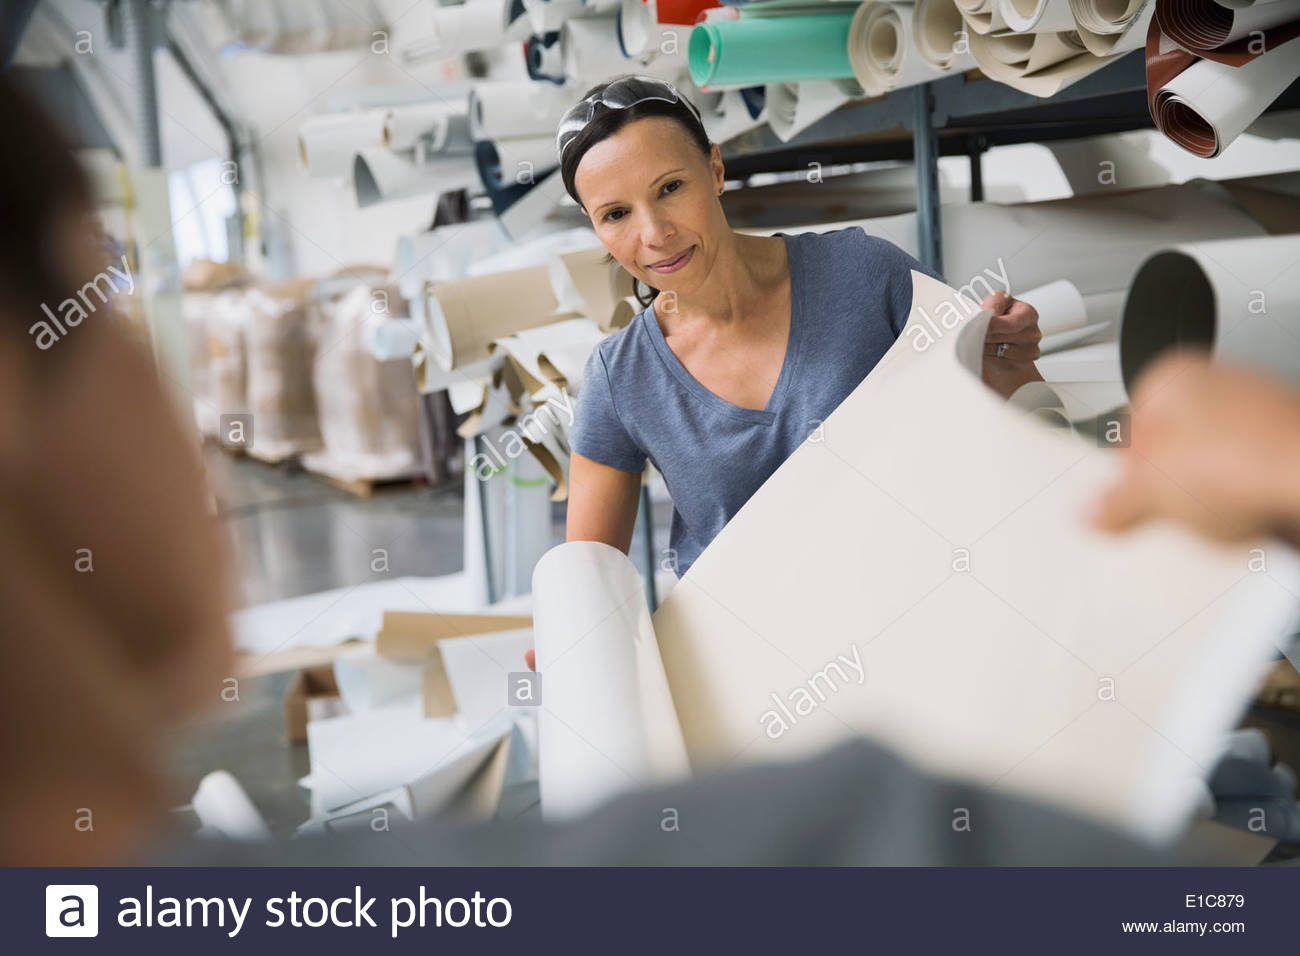 Workers in textile manufacturing plant - Stock Image